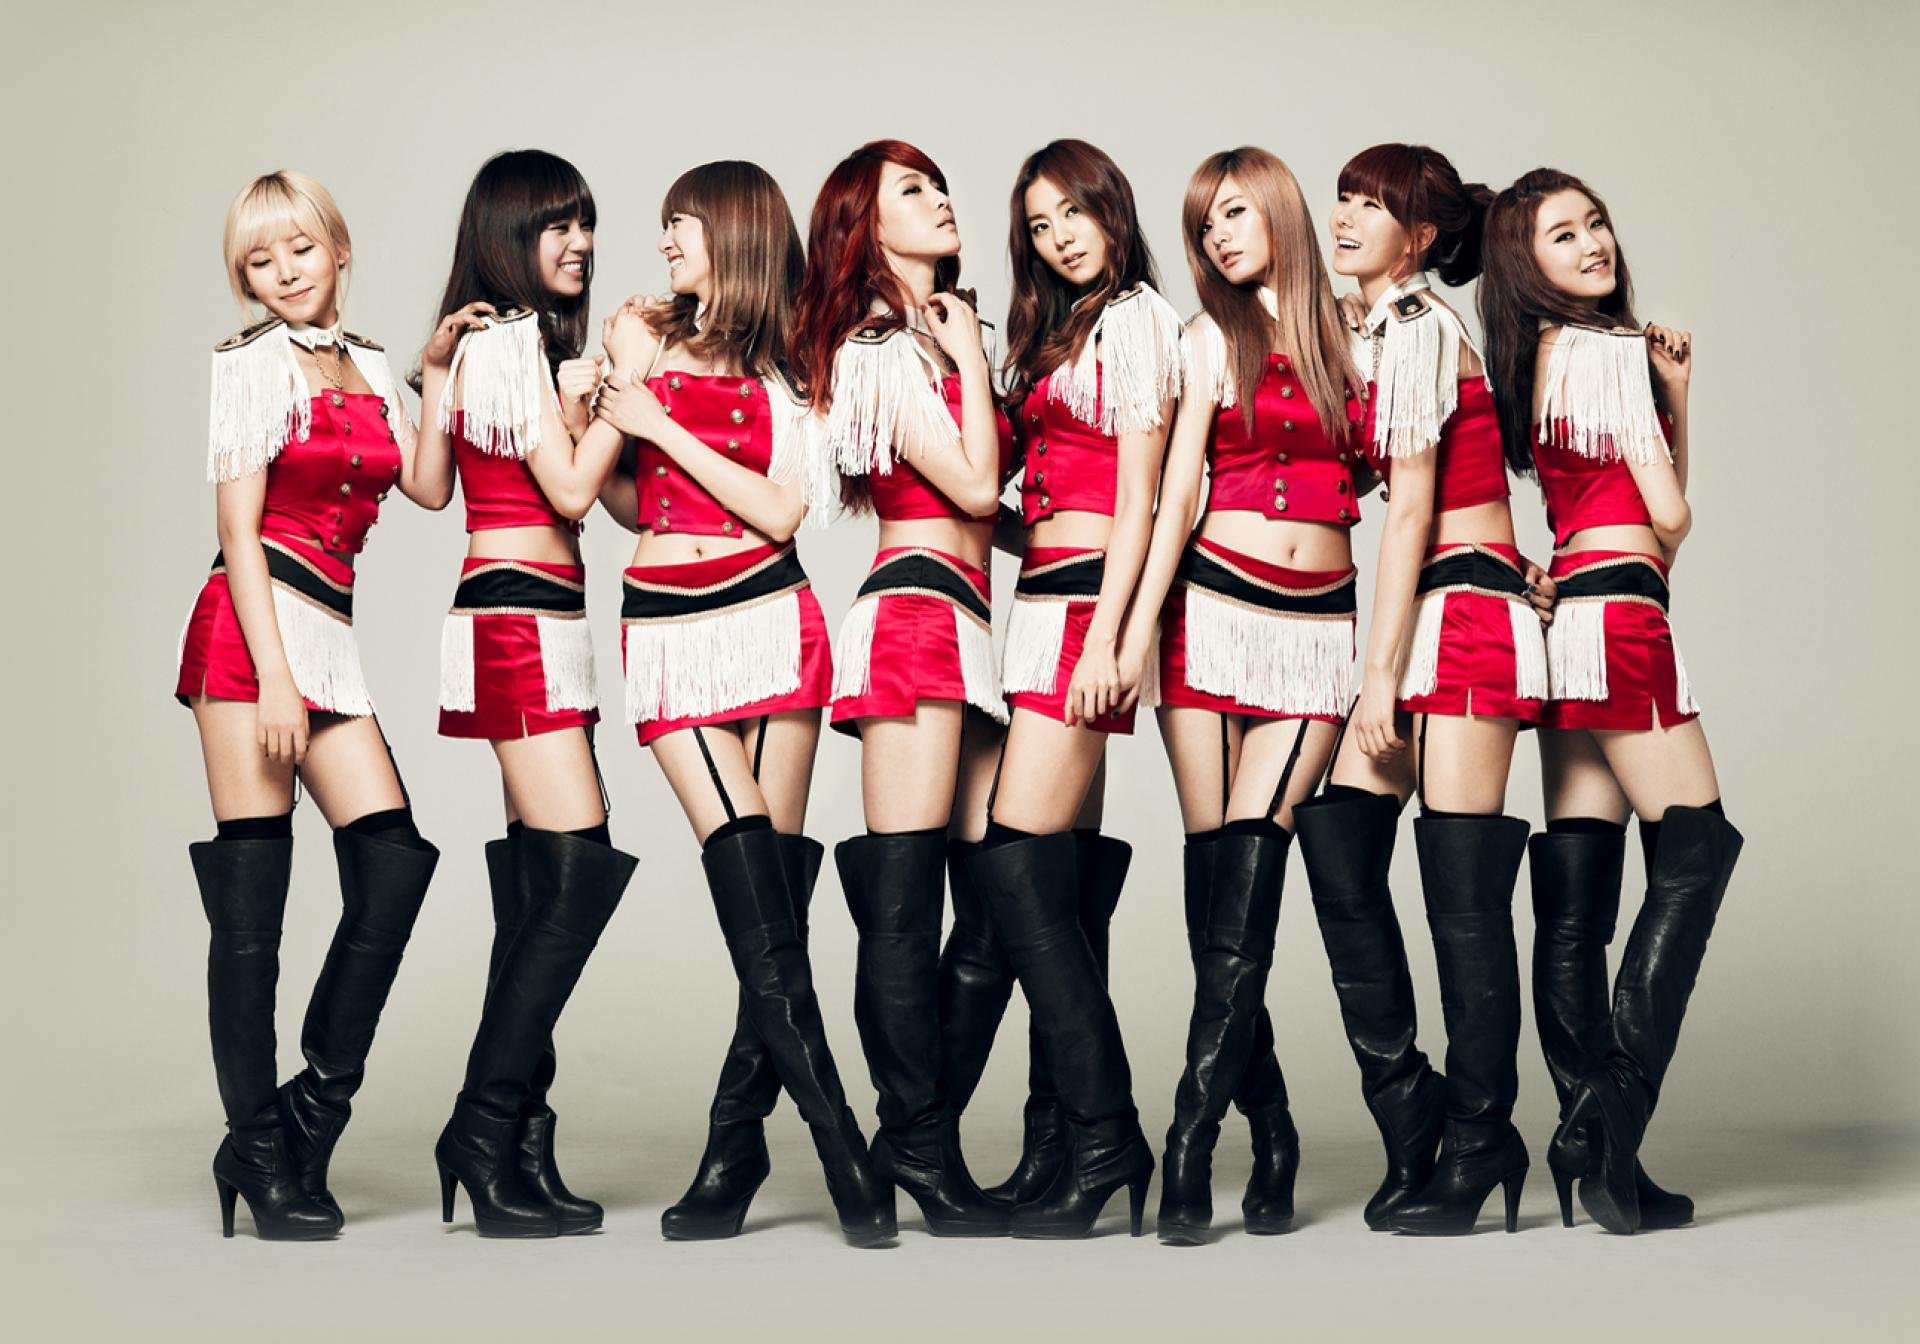 Awesome Kpop Images Download wallpapers to download for free greenvirals